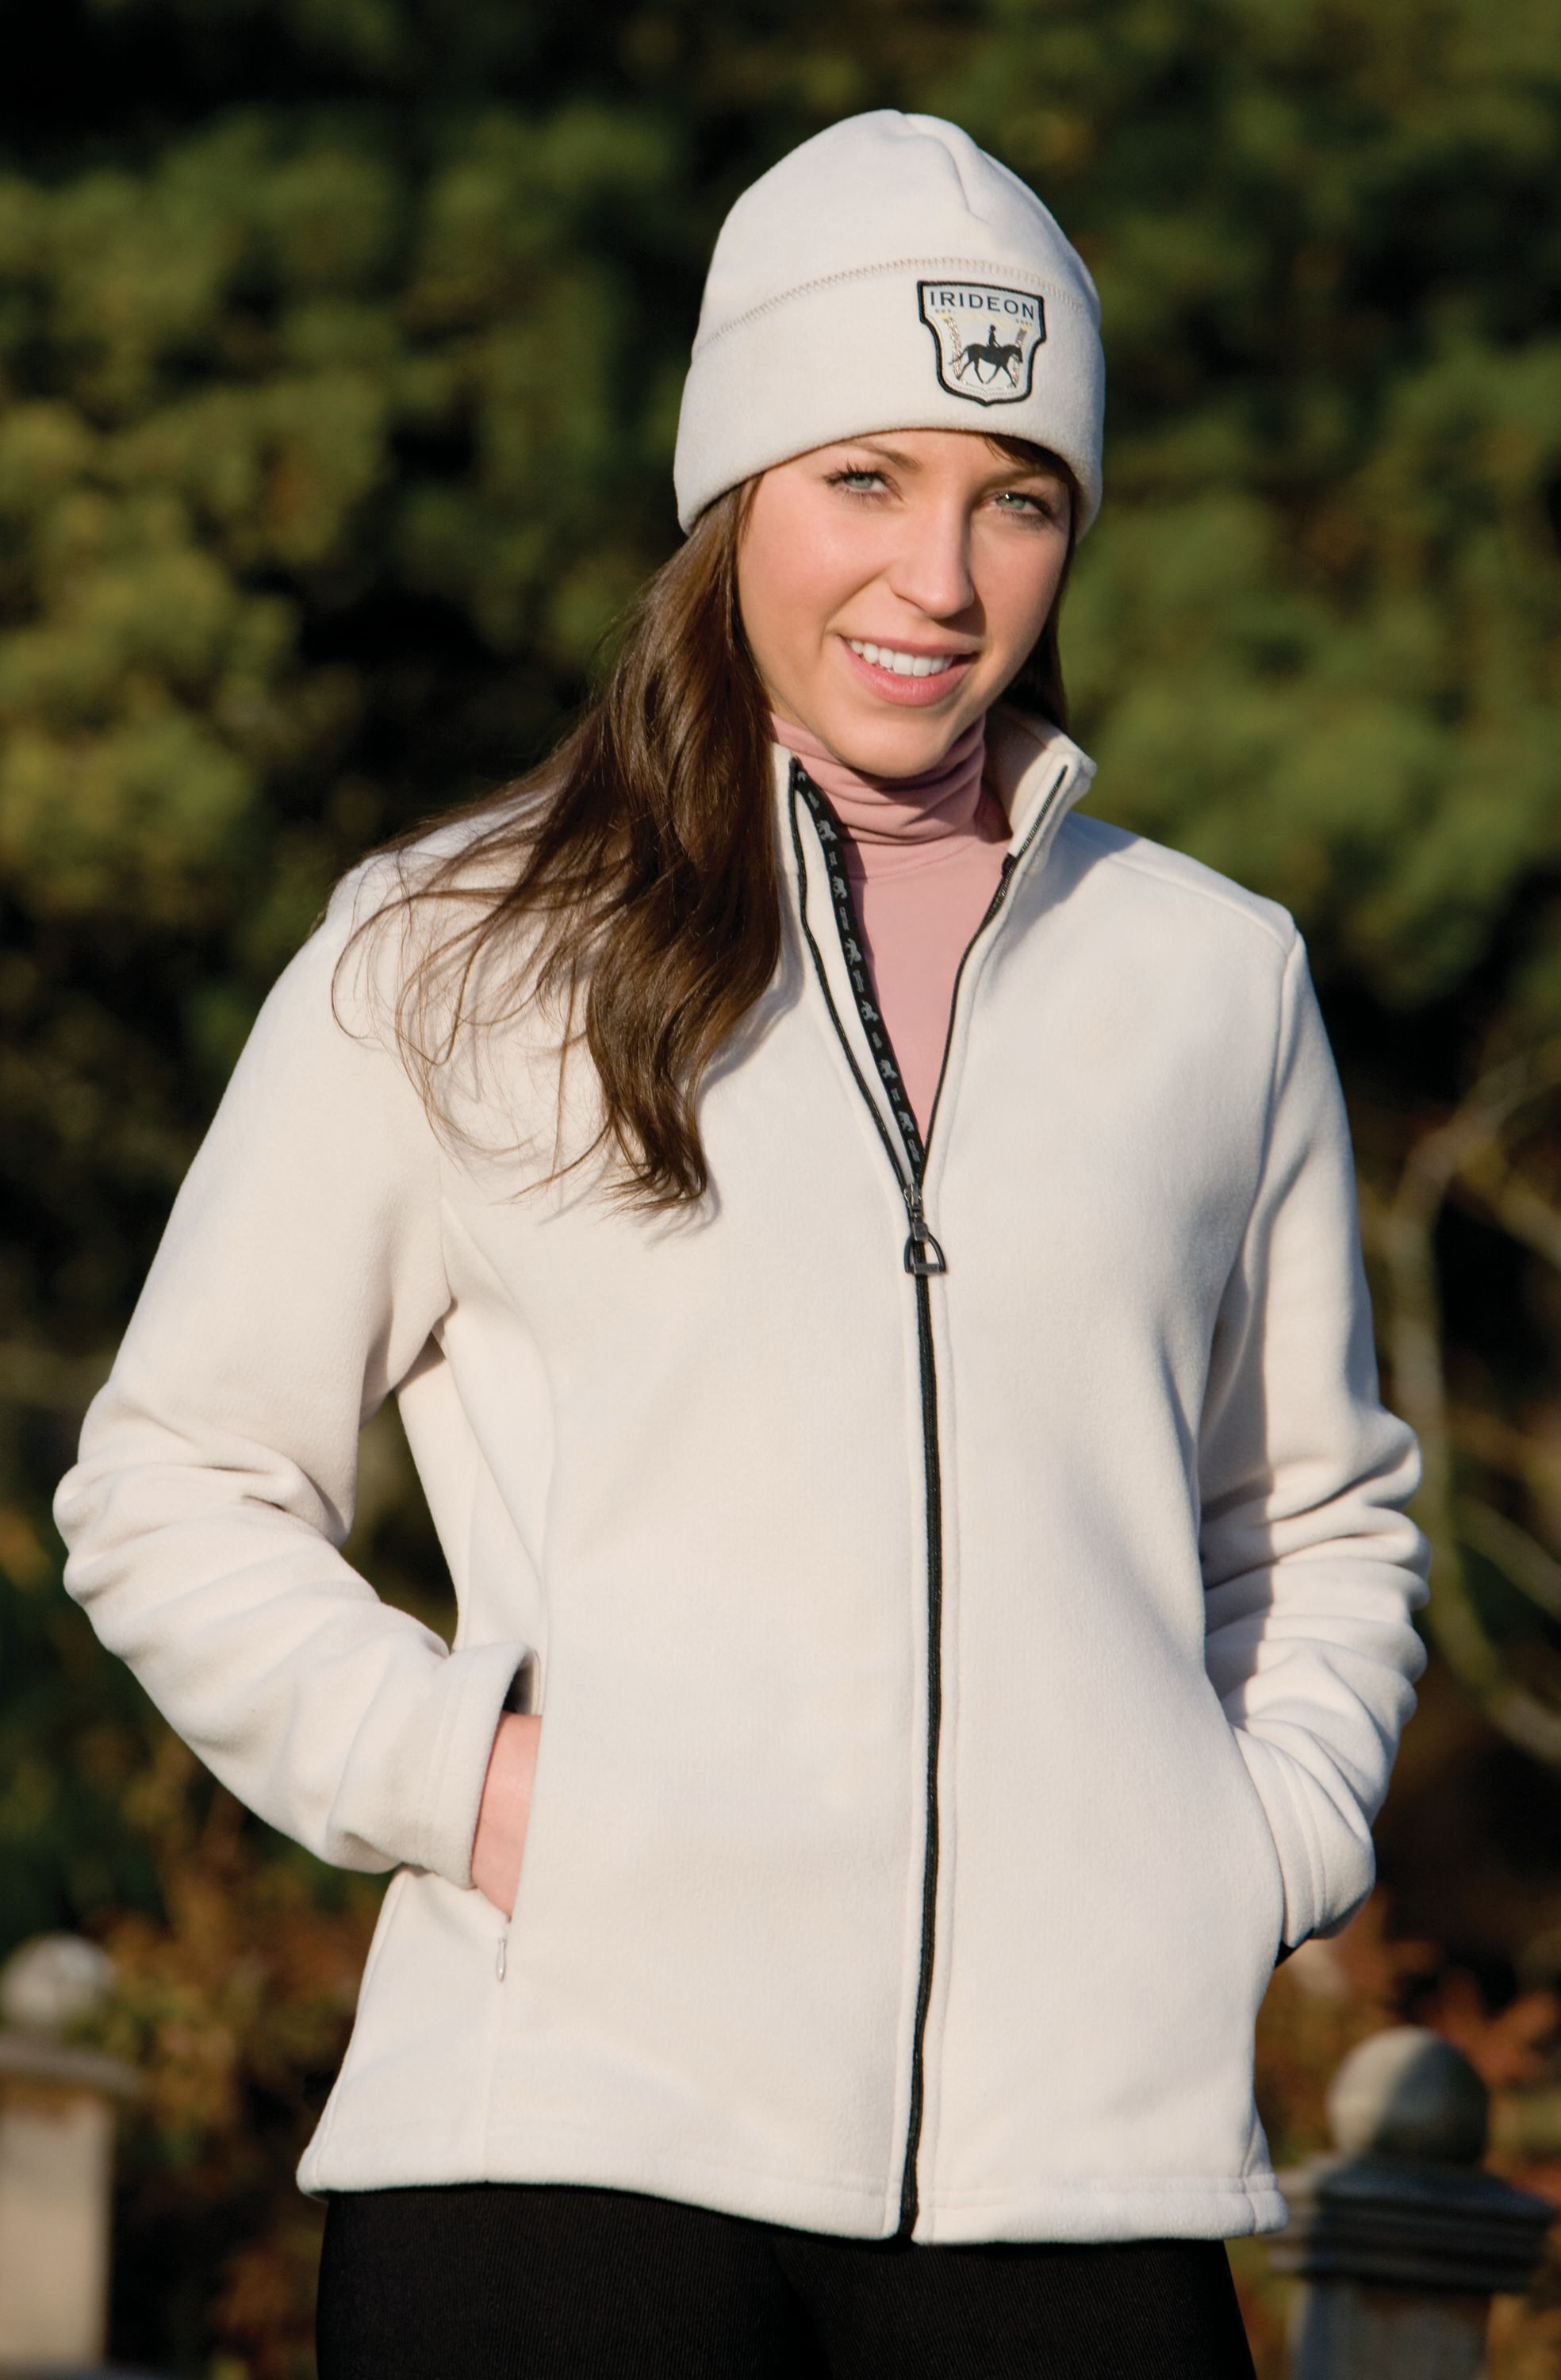 Irideon Ladies Aurora Sport Fleece Jacket